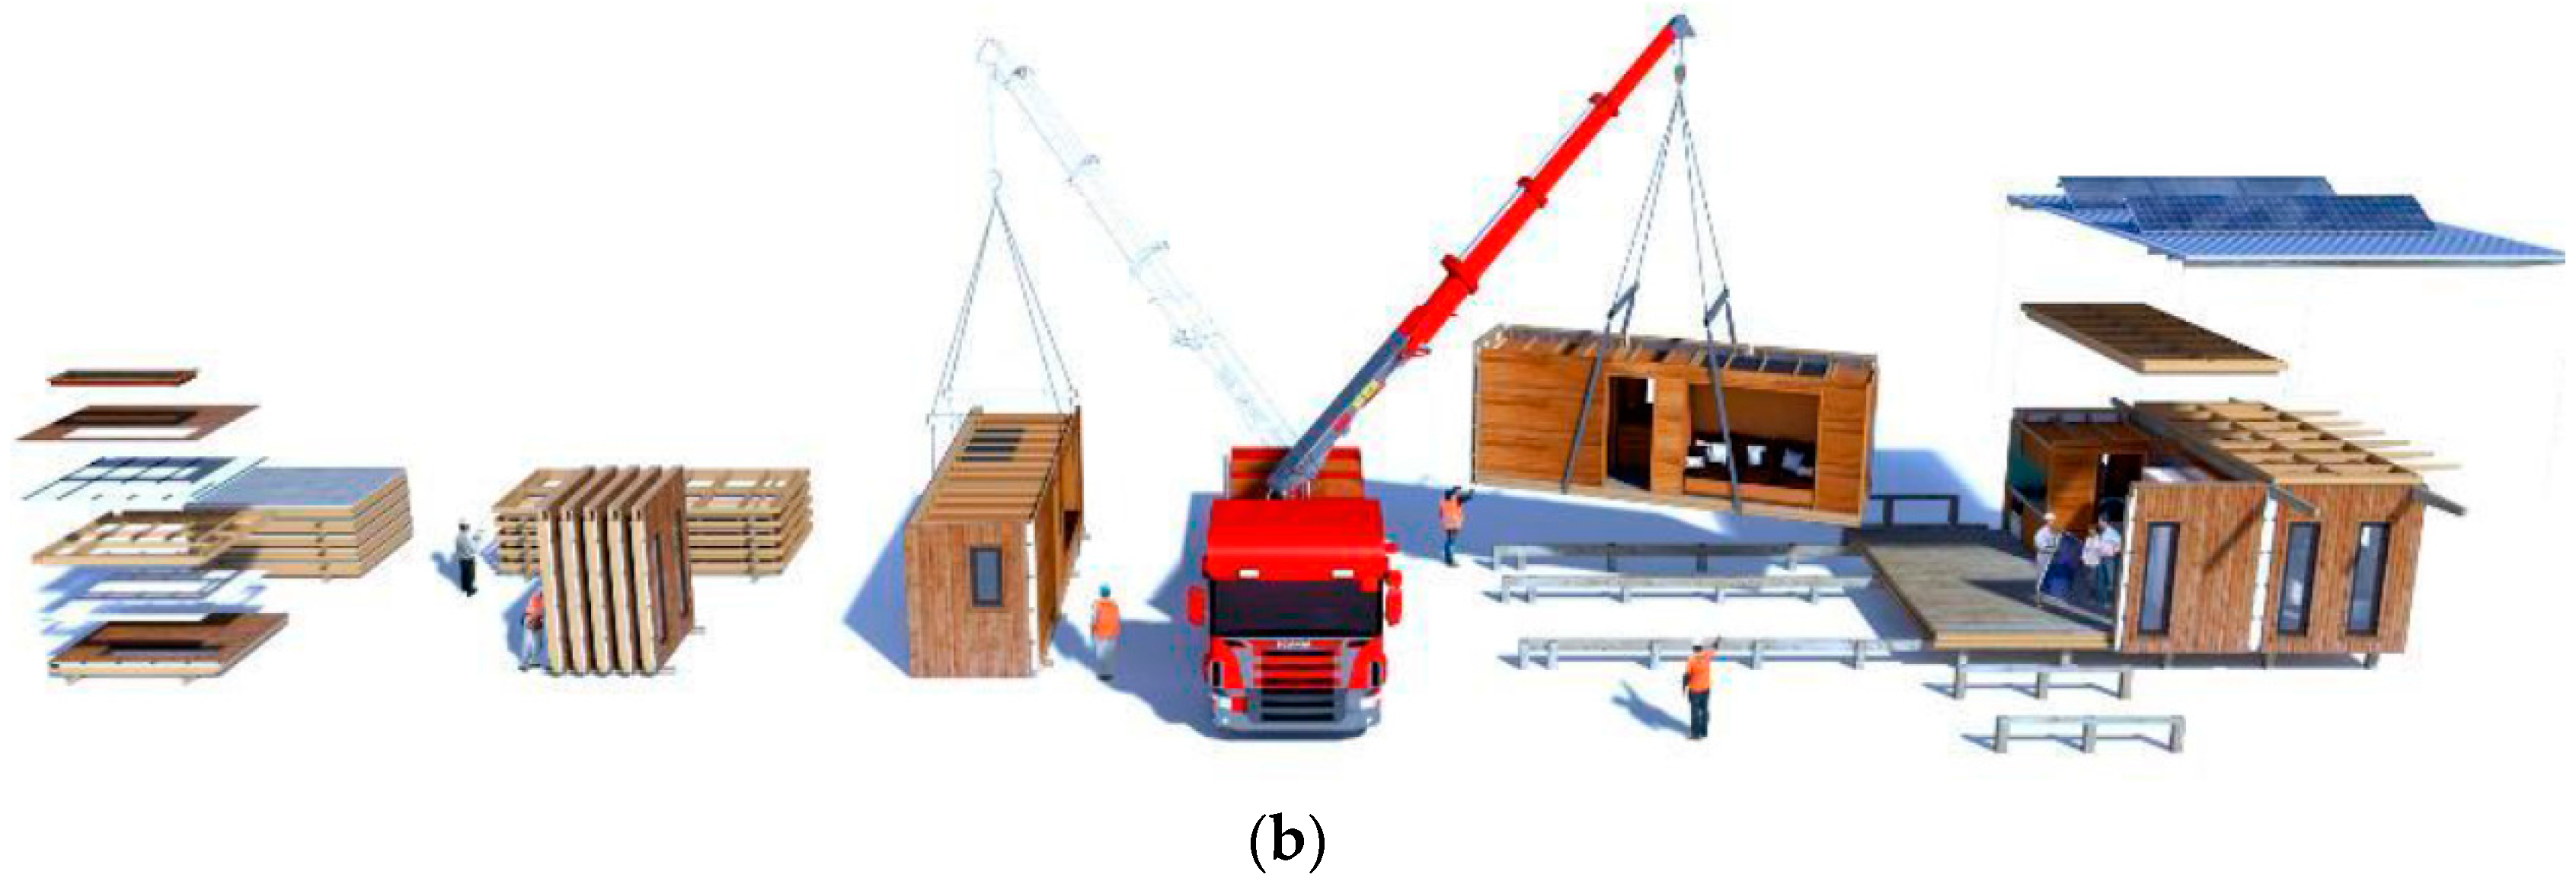 Modular Components In Building Construction